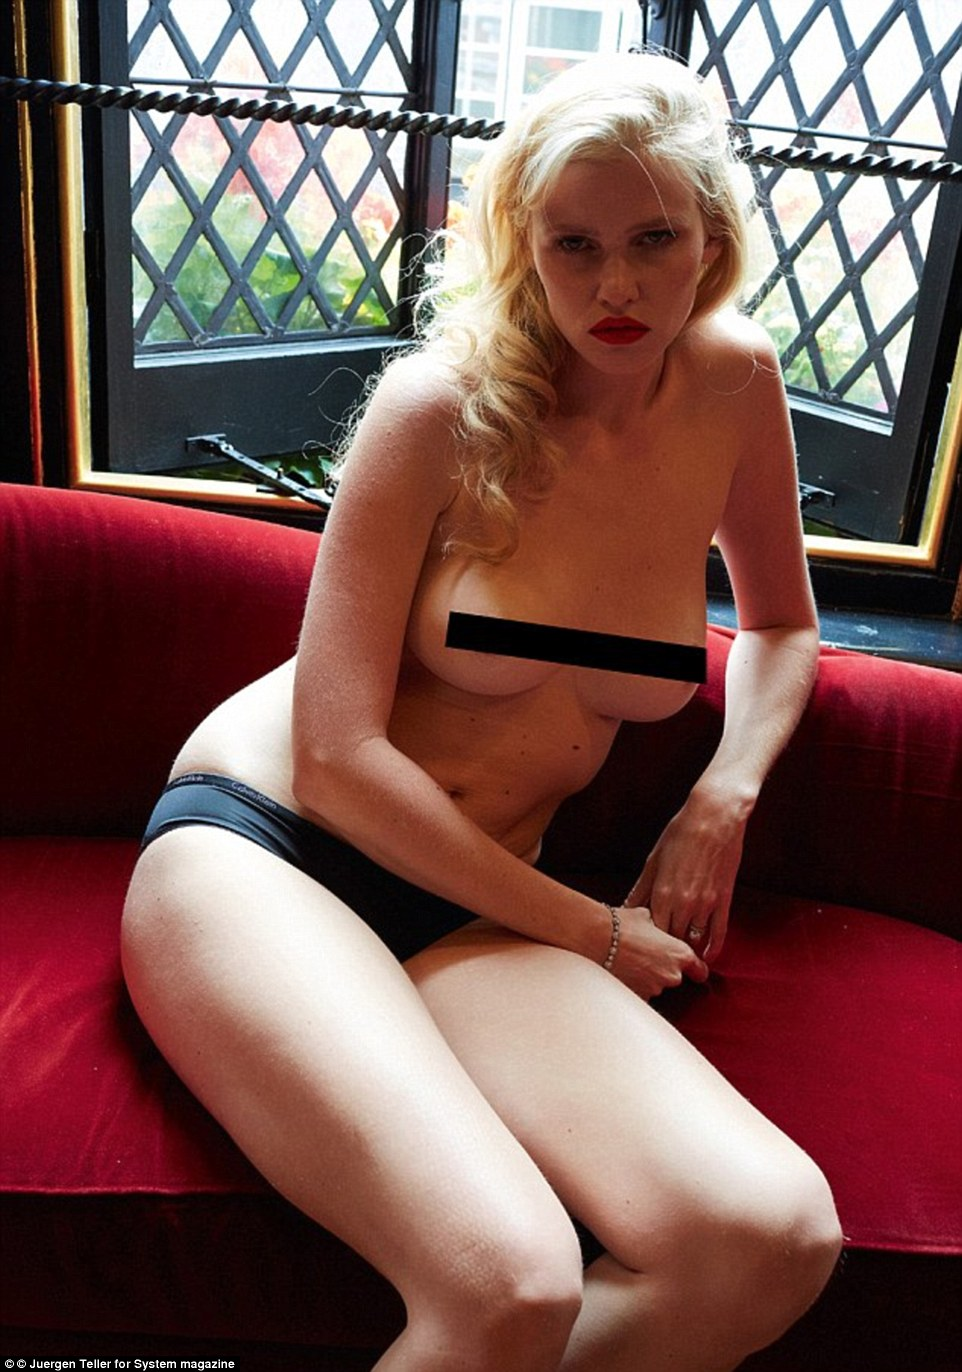 Less is more: Juergen recently photographed Lara Stone for the magazine after she had given birth in the same gritty style